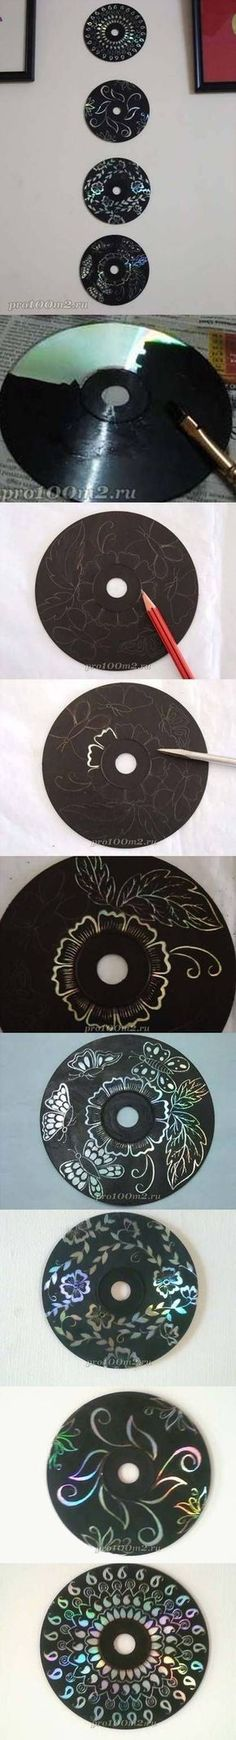 Recycled CDs - Possible Make & Take SRP prize? Have teen volunteers paint (Monticello volunteer time project?). Give painted CD with skewer in ziplock bag as prize.